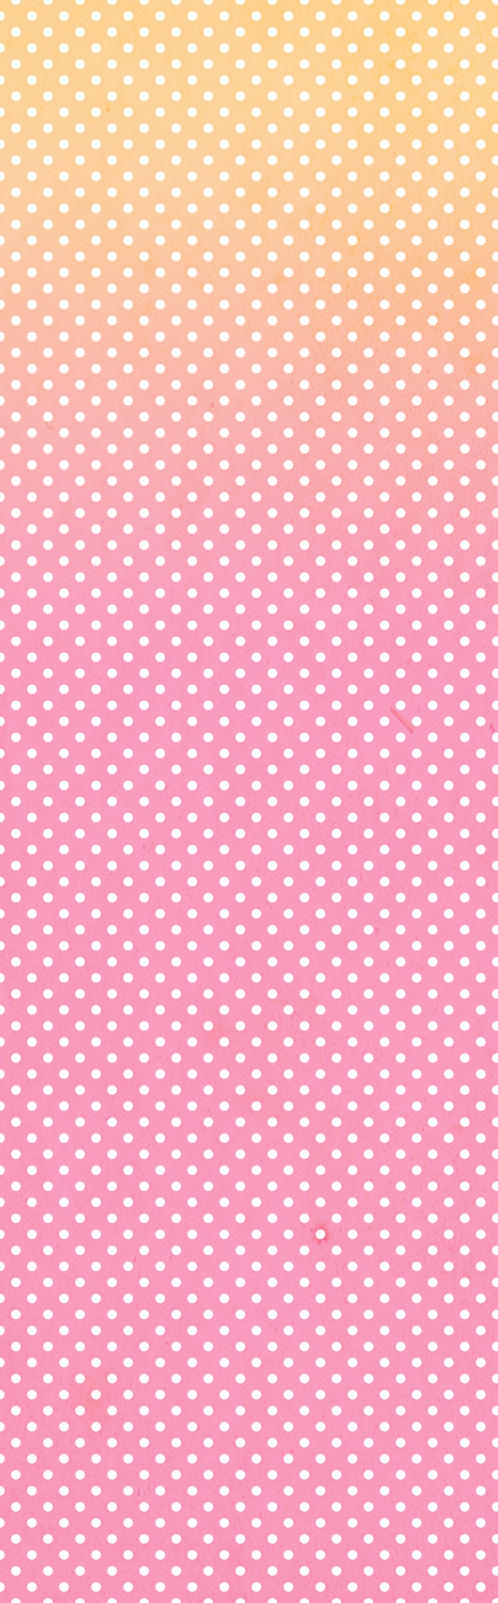 Polka-Dot CustomBox Background by Demachic